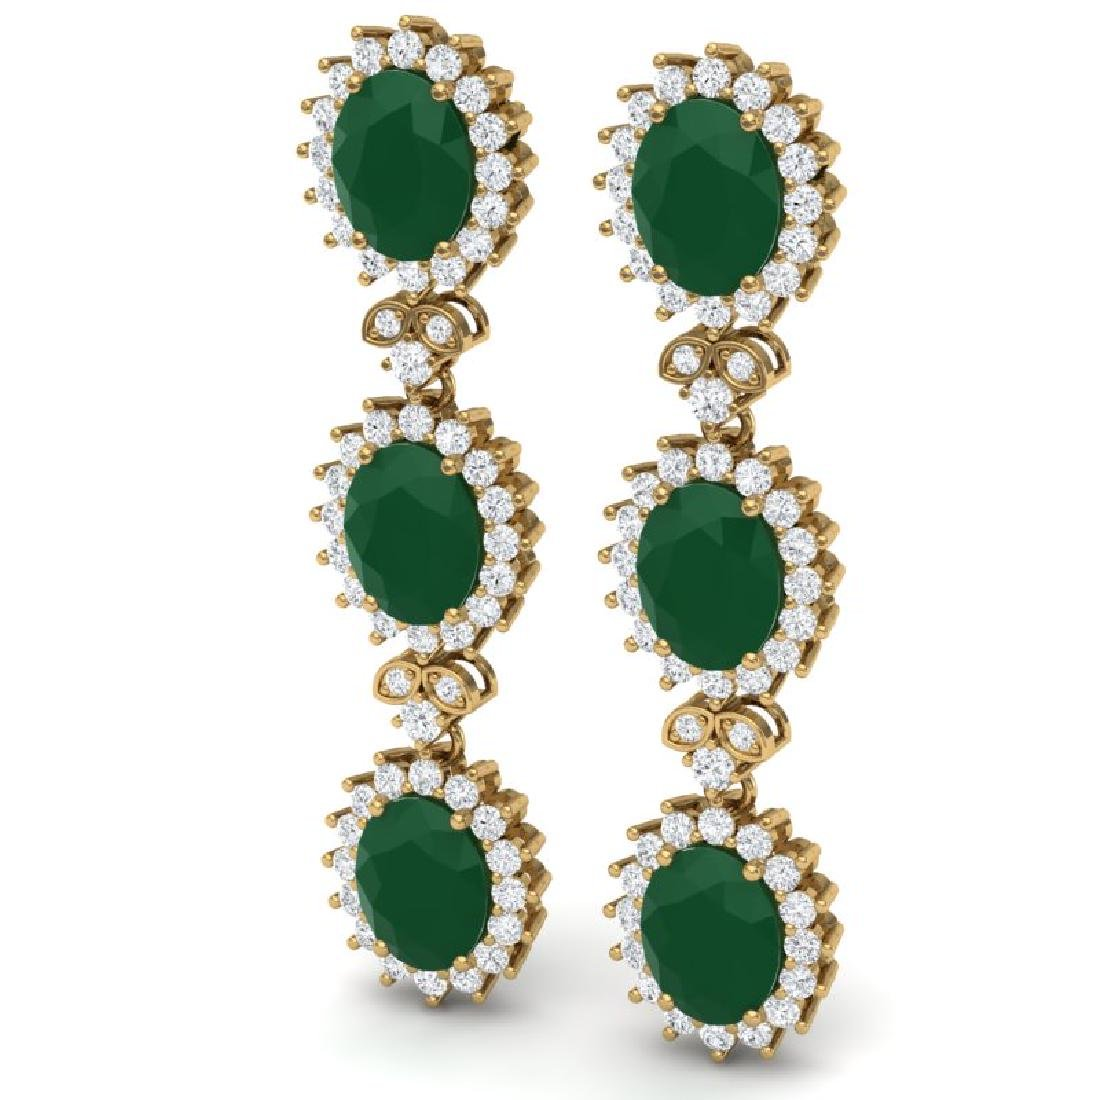 24.52 CTW Royalty Emerald & VS Diamond Earrings 18K - 2